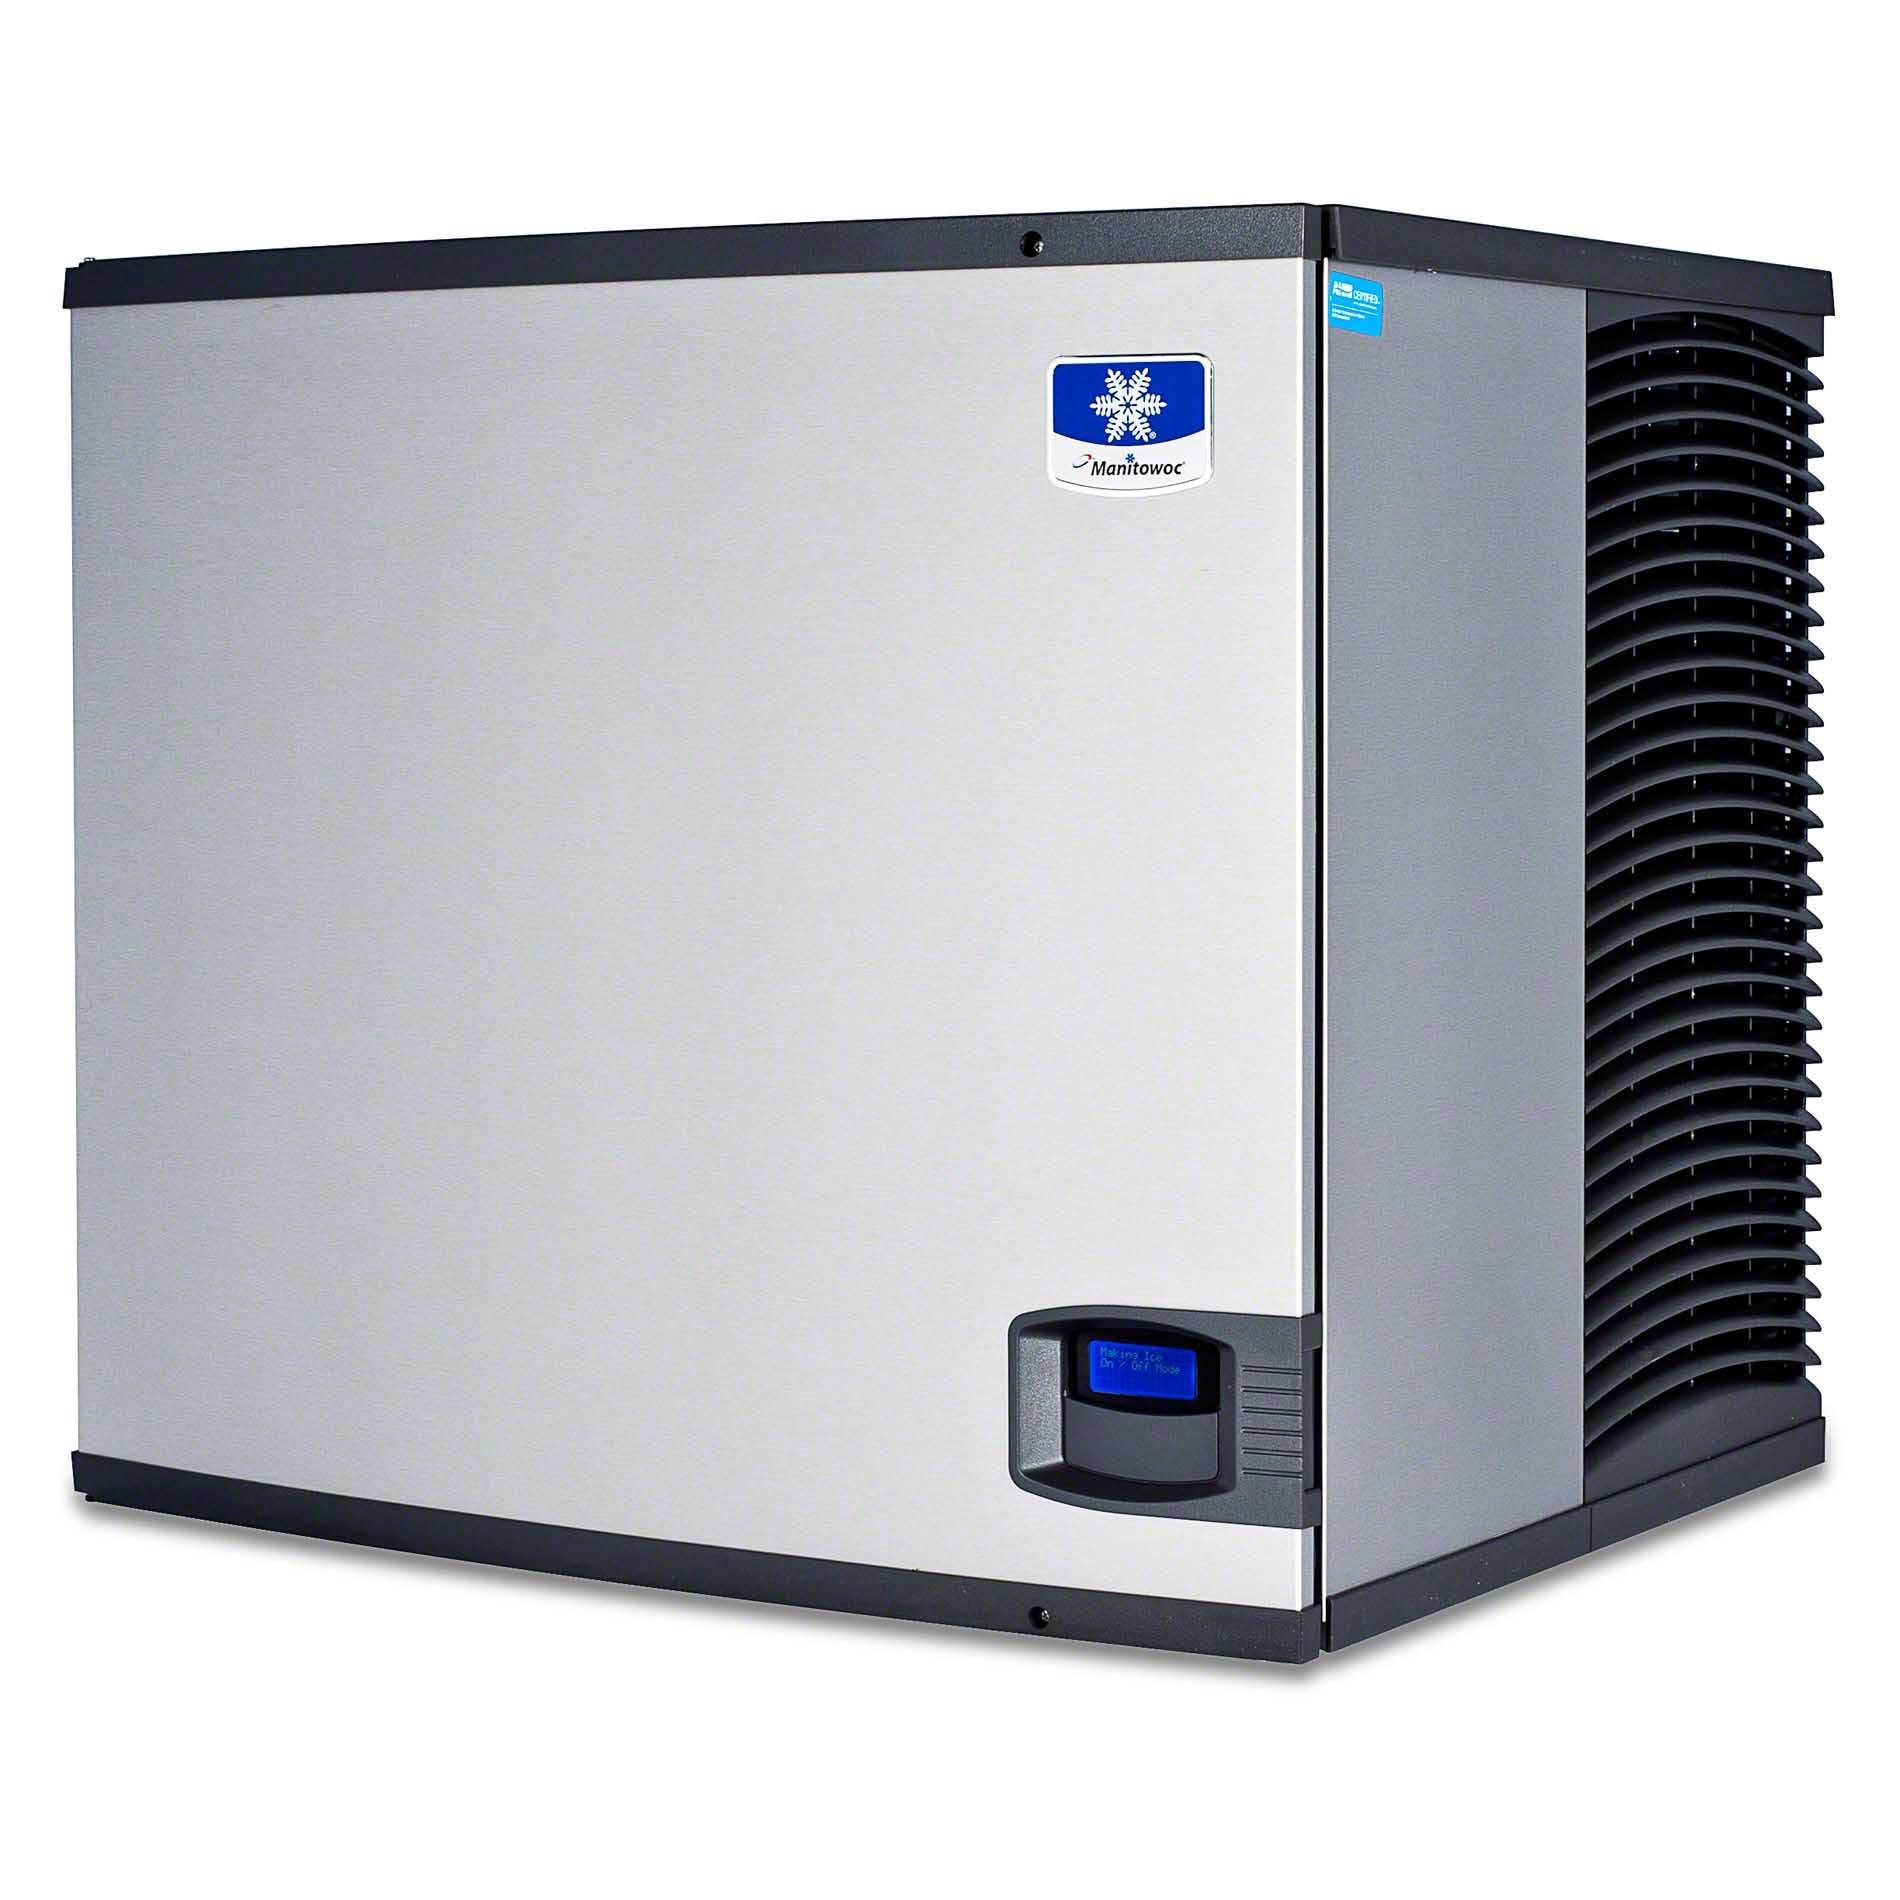 Manitowoc - ID-1092N 960 lb Full Size Cube Ice Machine - Indigo Series - sold by Food Service Warehouse